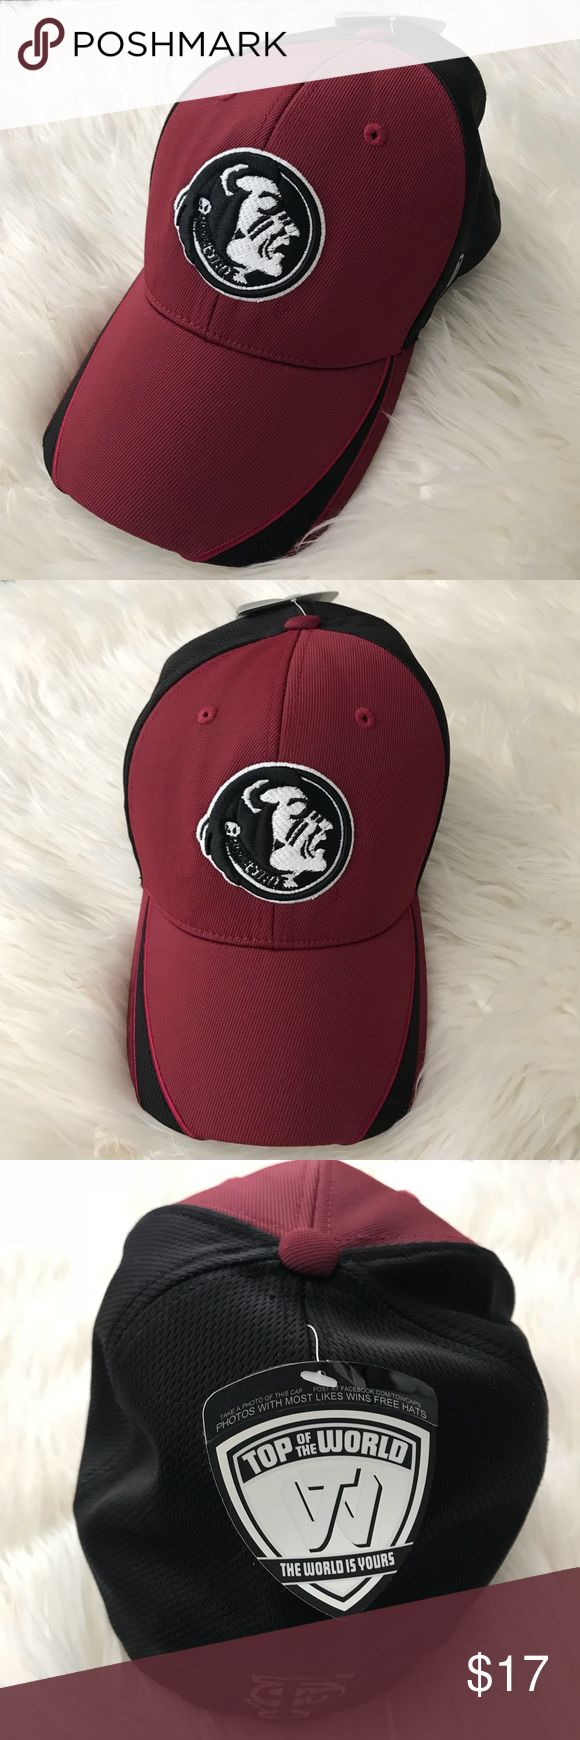 NWT FSU Baseball Hat Brand new with tags FSU baseball hat! Perfect for any Florida State fan! It is fitted but stretchy and one size fits most! Can be worn by both men and women. Accessories Hats